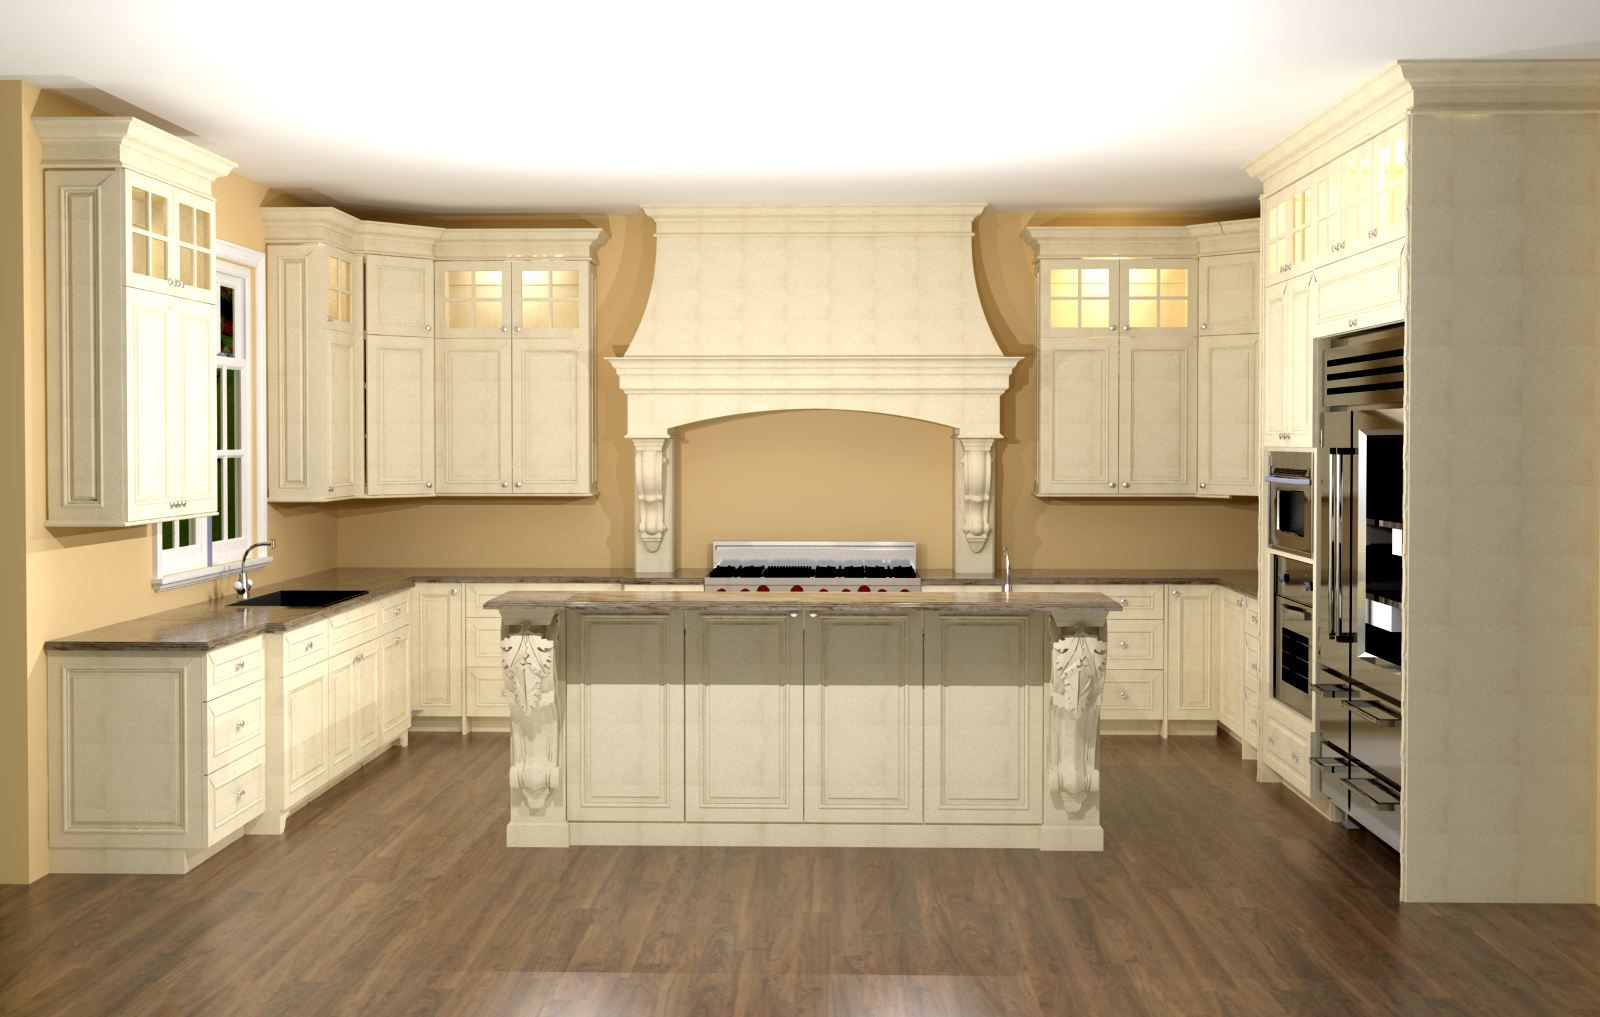 Idea For Kitchen Island Large Kitchen With Custom Hood Features Large Enkeboll Corbels On